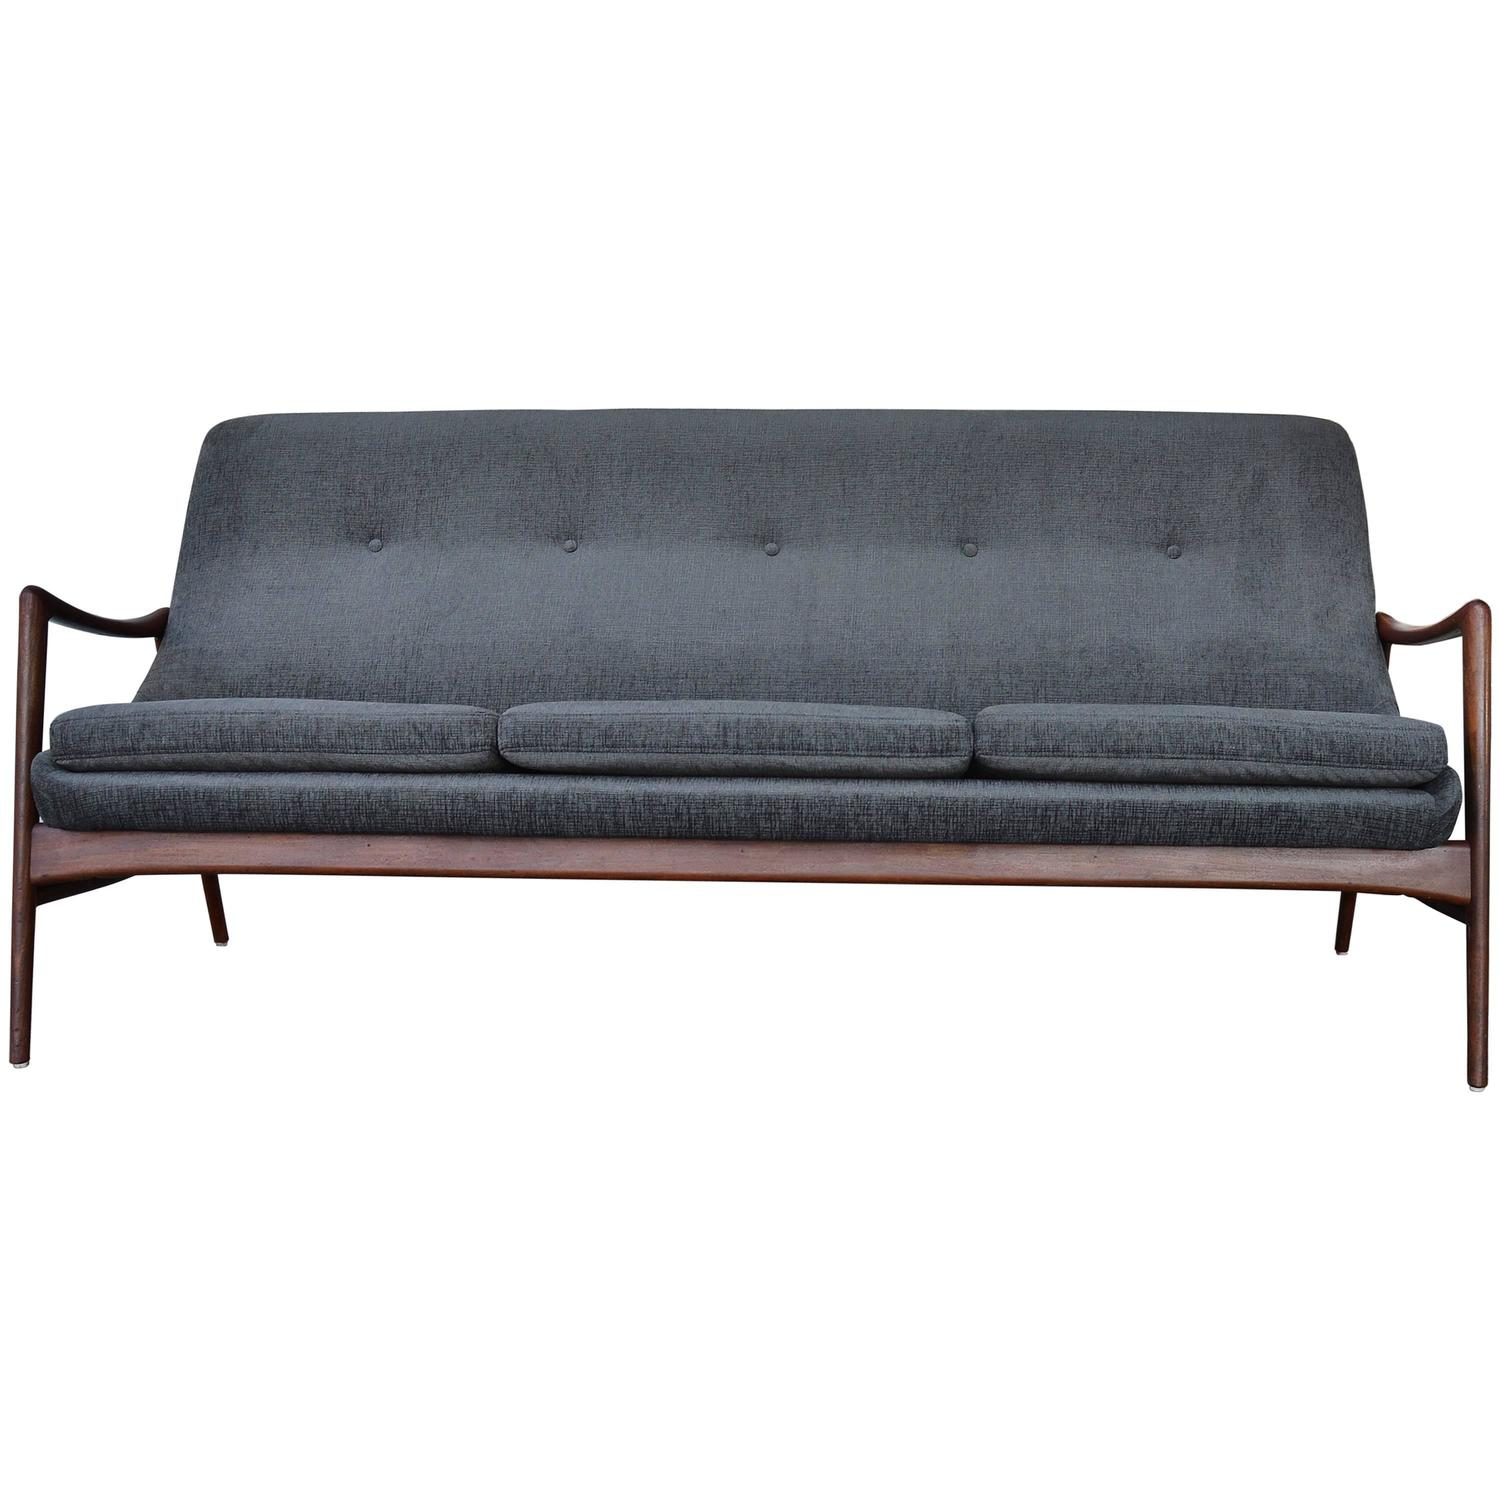 Restored Danish Modern Teak Sofa by Ingmar Relling for Westnofa at